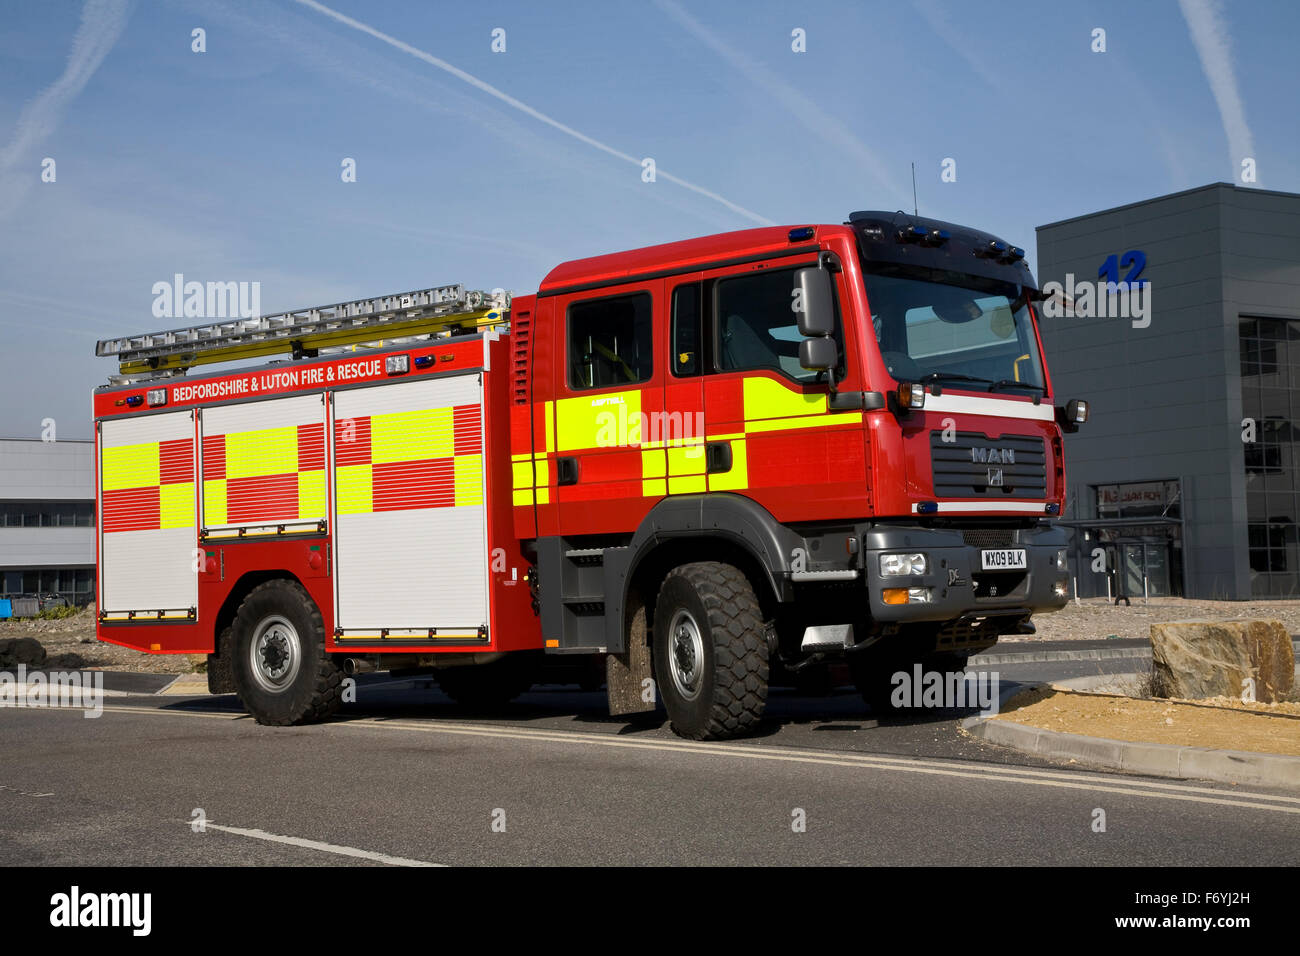 Off Road Fire Truck >> Man Off Road Fire Truck Stock Photo 90346665 Alamy